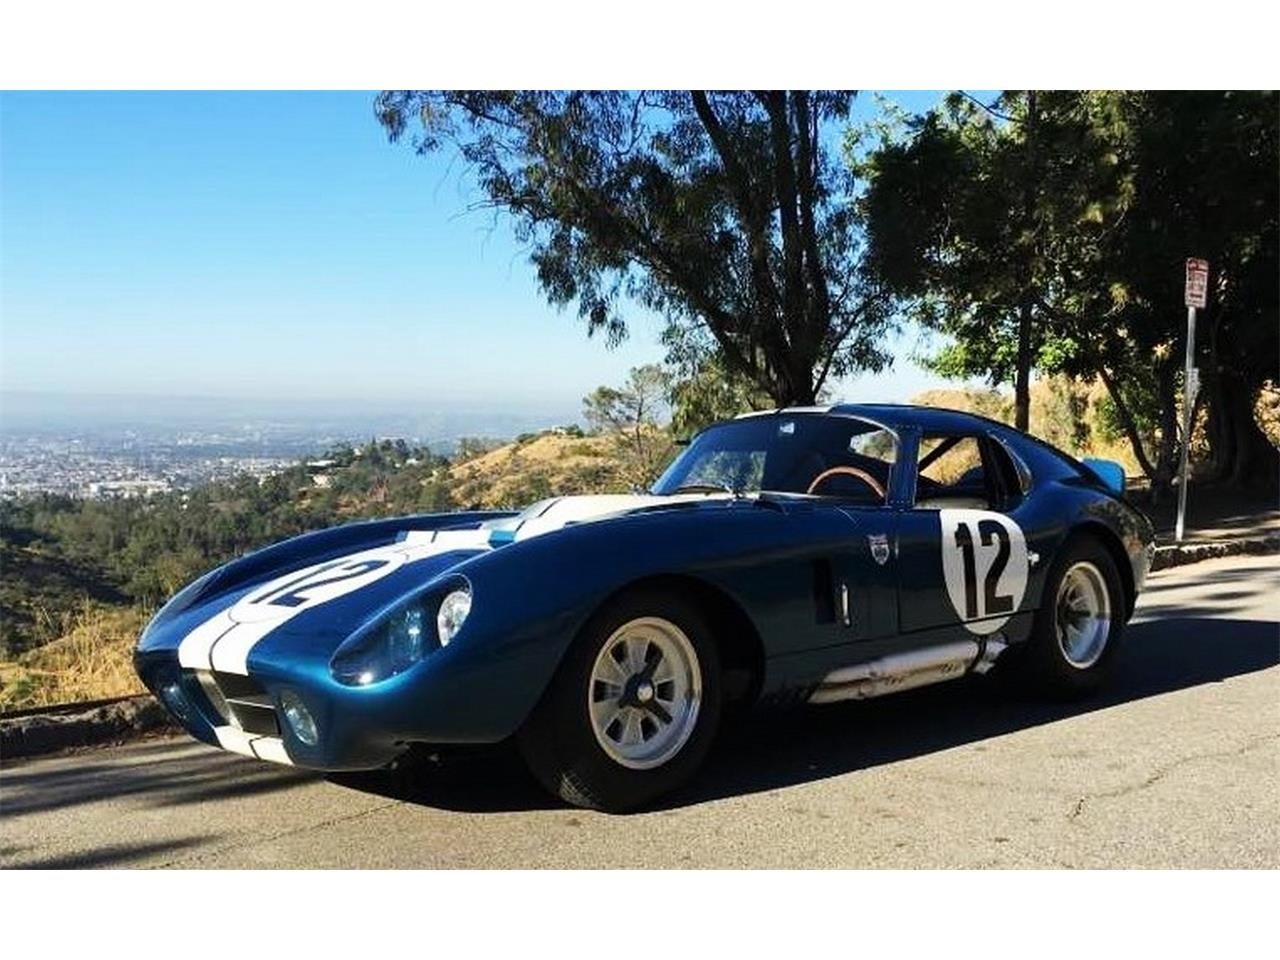 Large Picture of 1962 Daytona Coupe located in Irvine California Offered by Hillbank Motorsports - LBP2